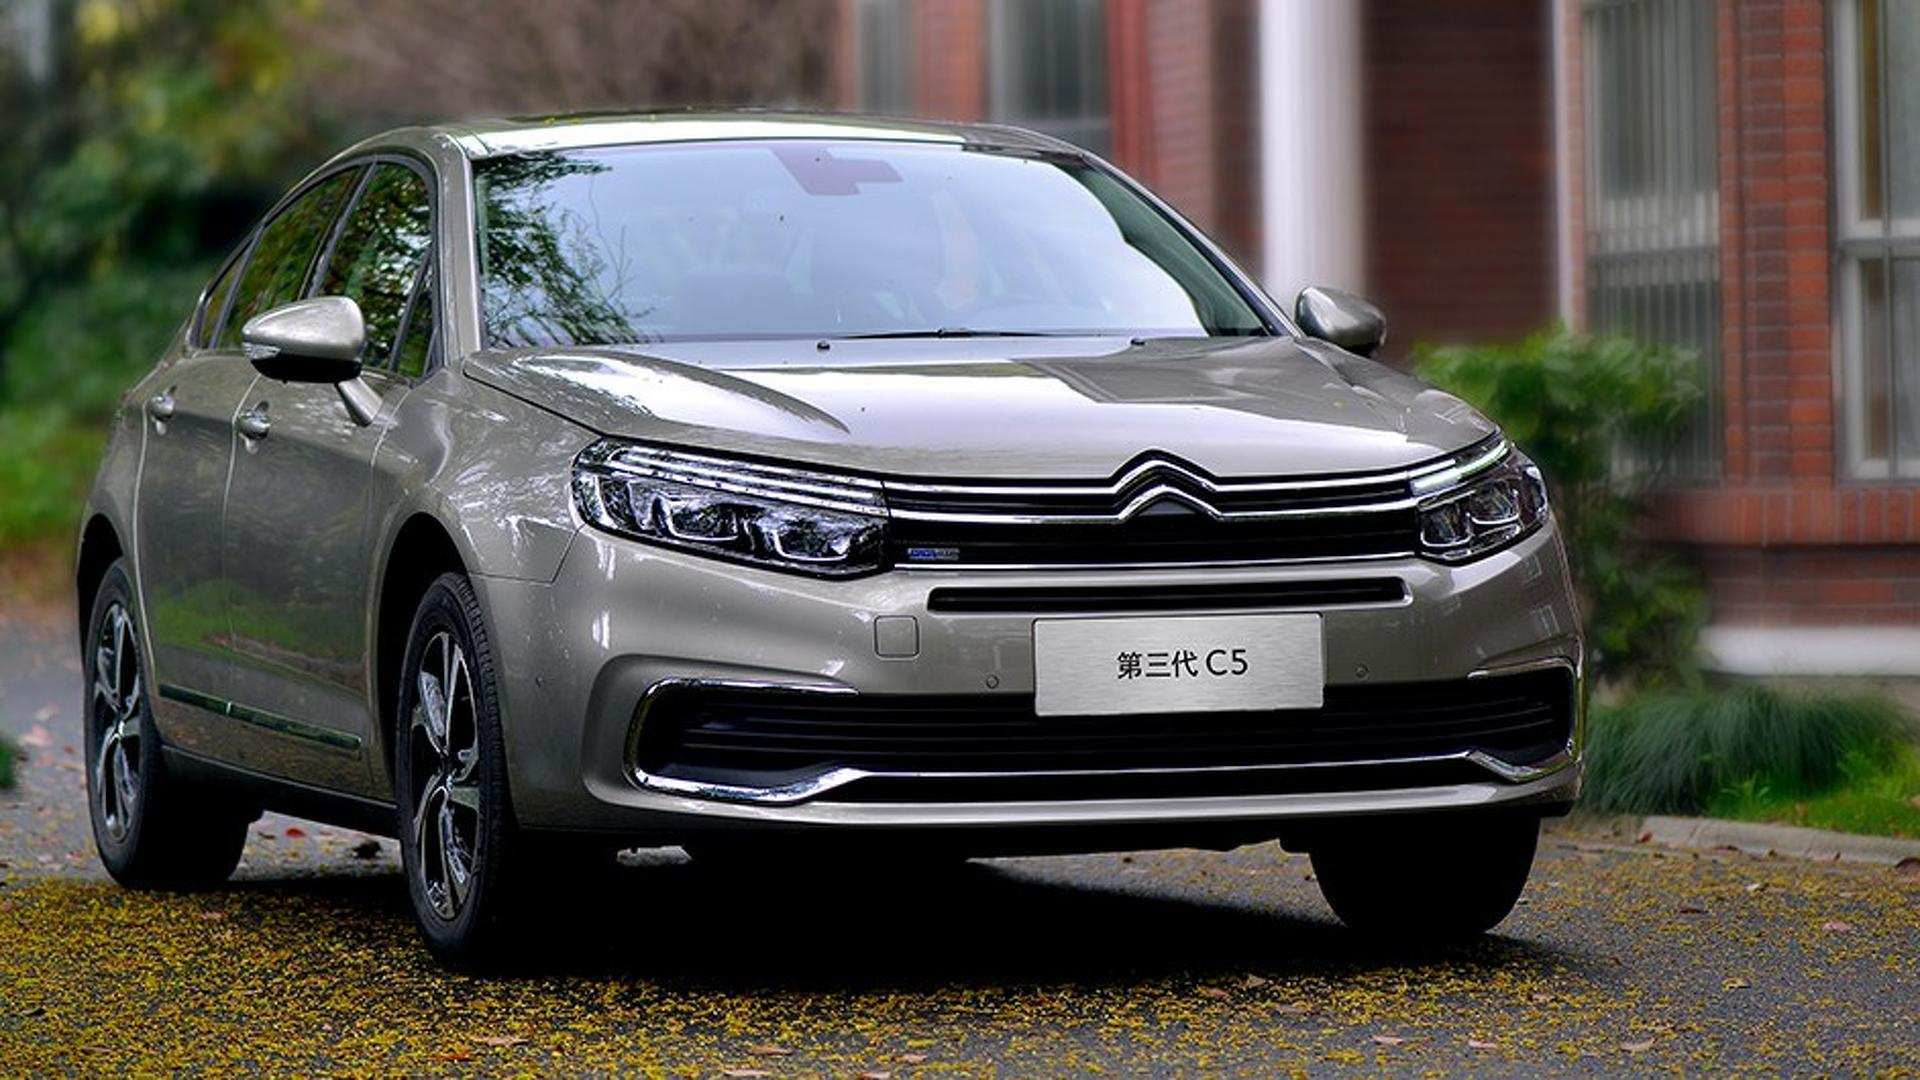 45 A 2019 Citroen C5 Reviews